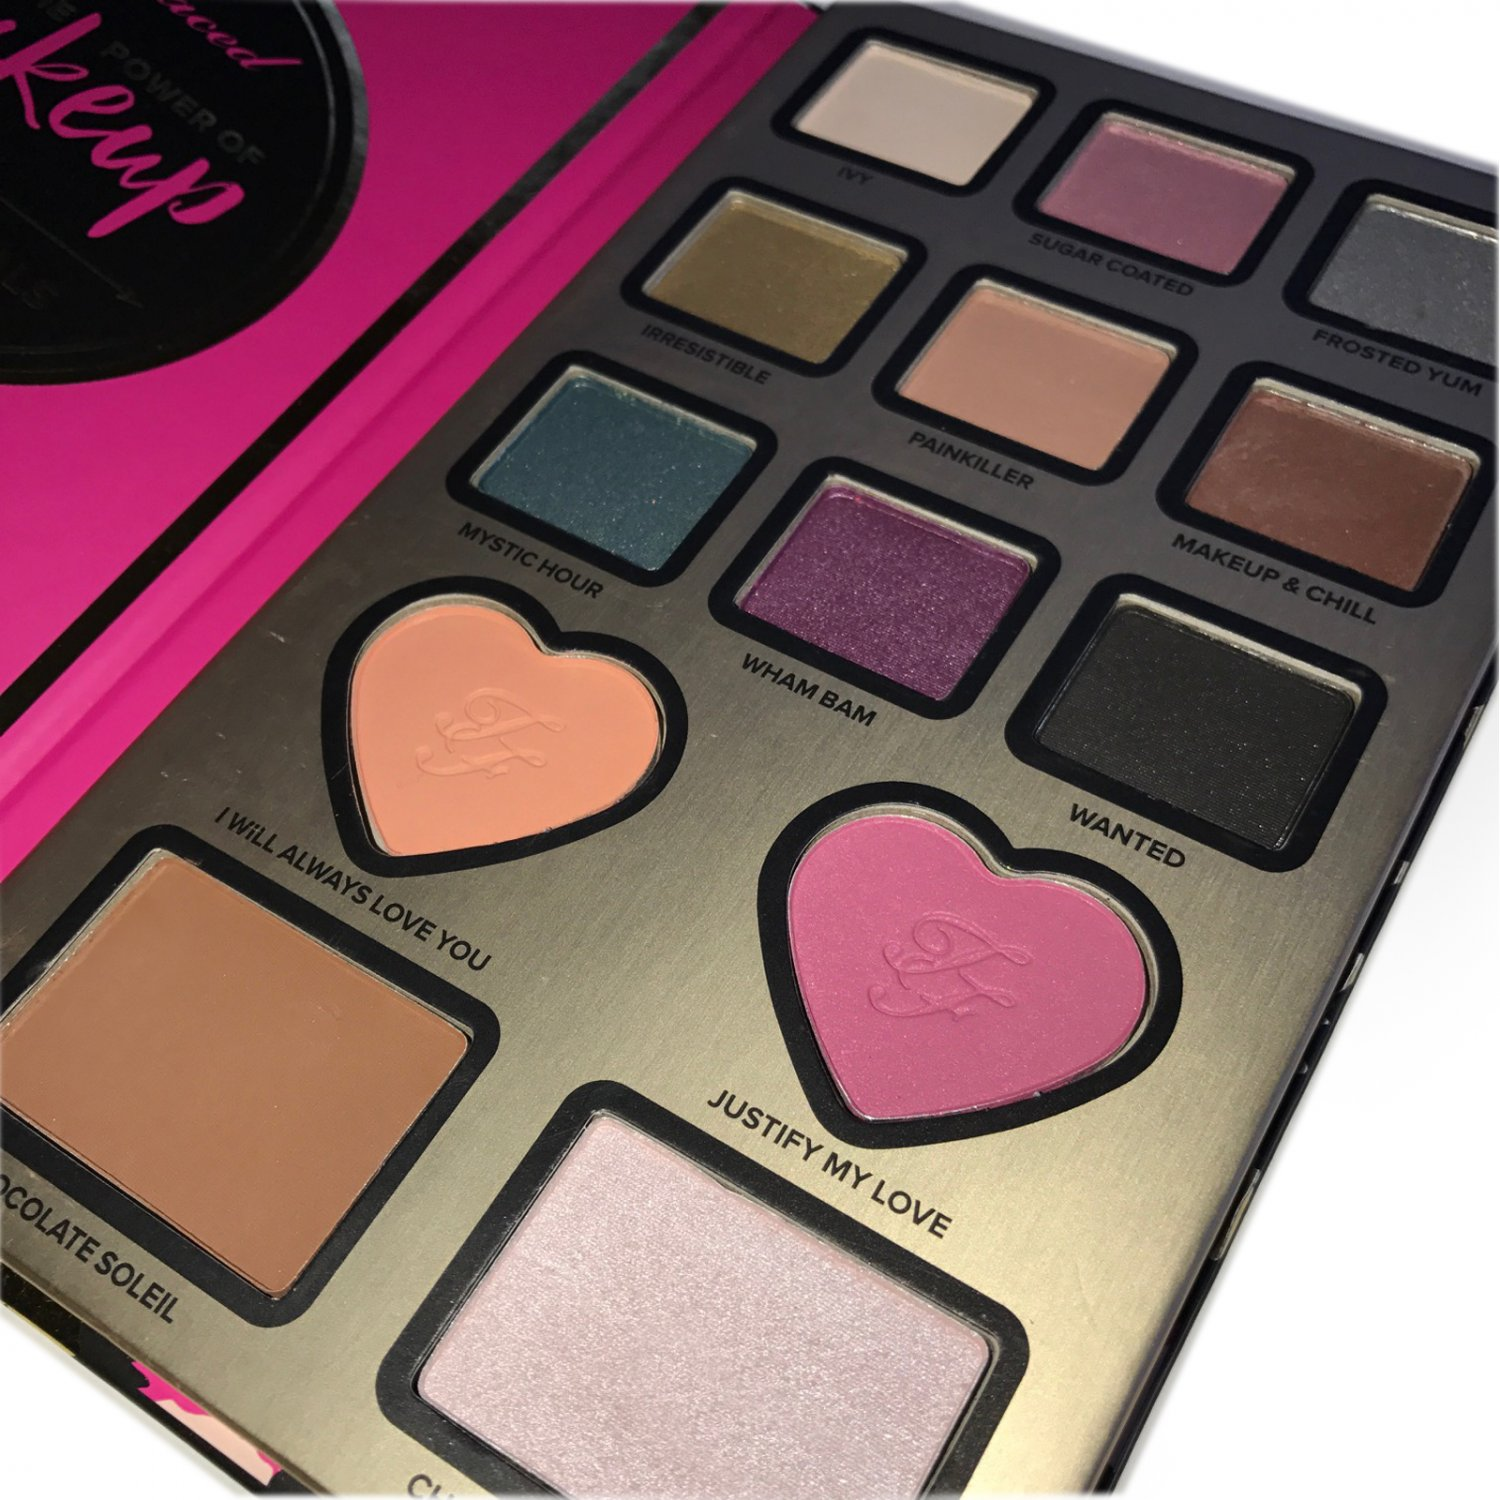 TOO FACED The Power Of Makeup by NIKKIE TUTORIALS + FAST FREE SHIPPING (USA)